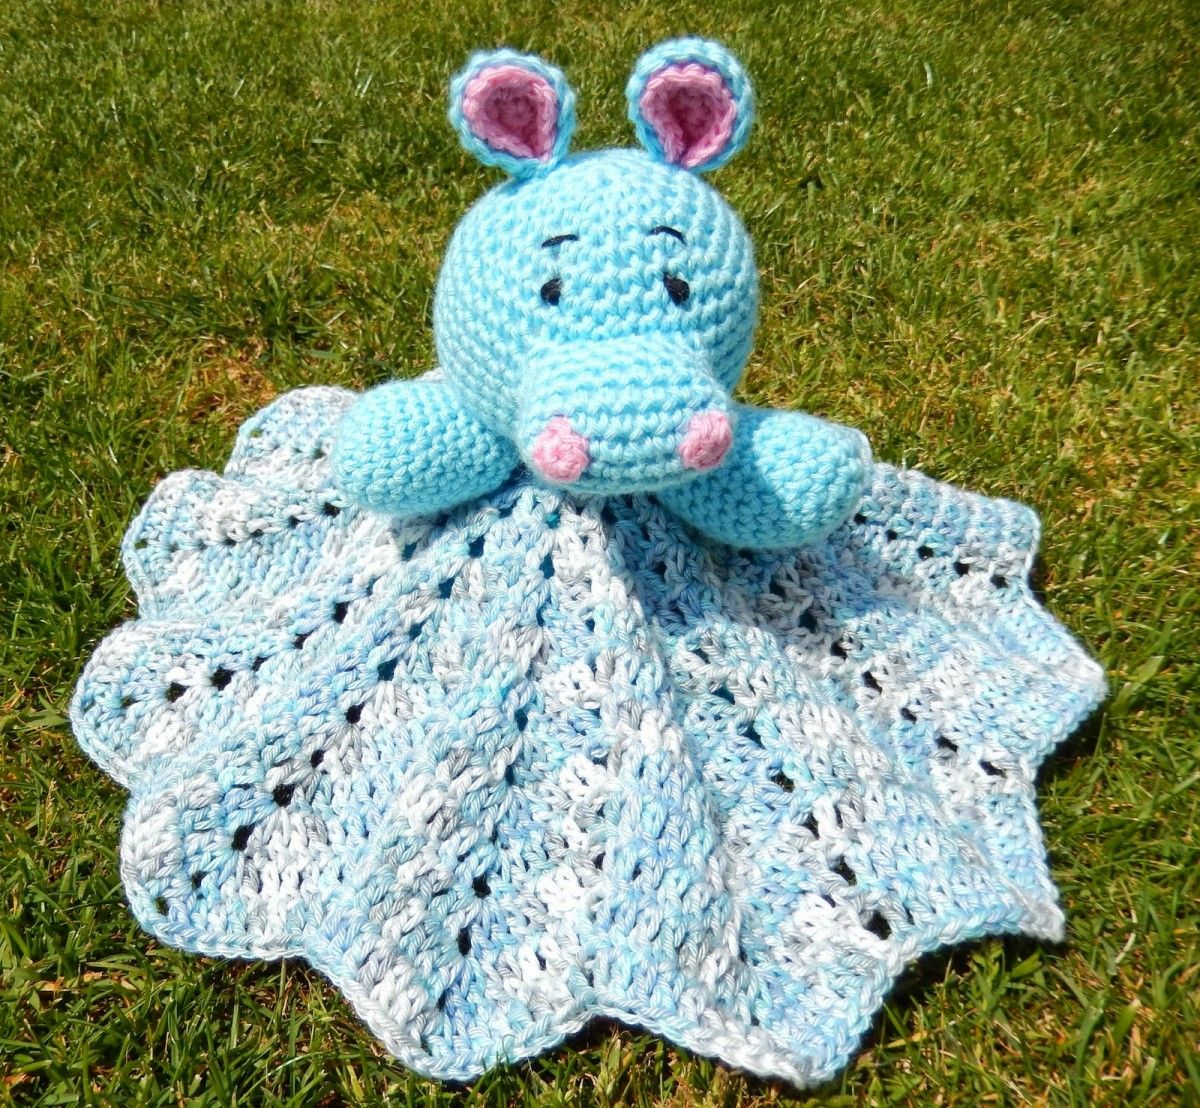 Crochet Hippo Pattern Ideas The Best Collection | Manta, Cobija y ...